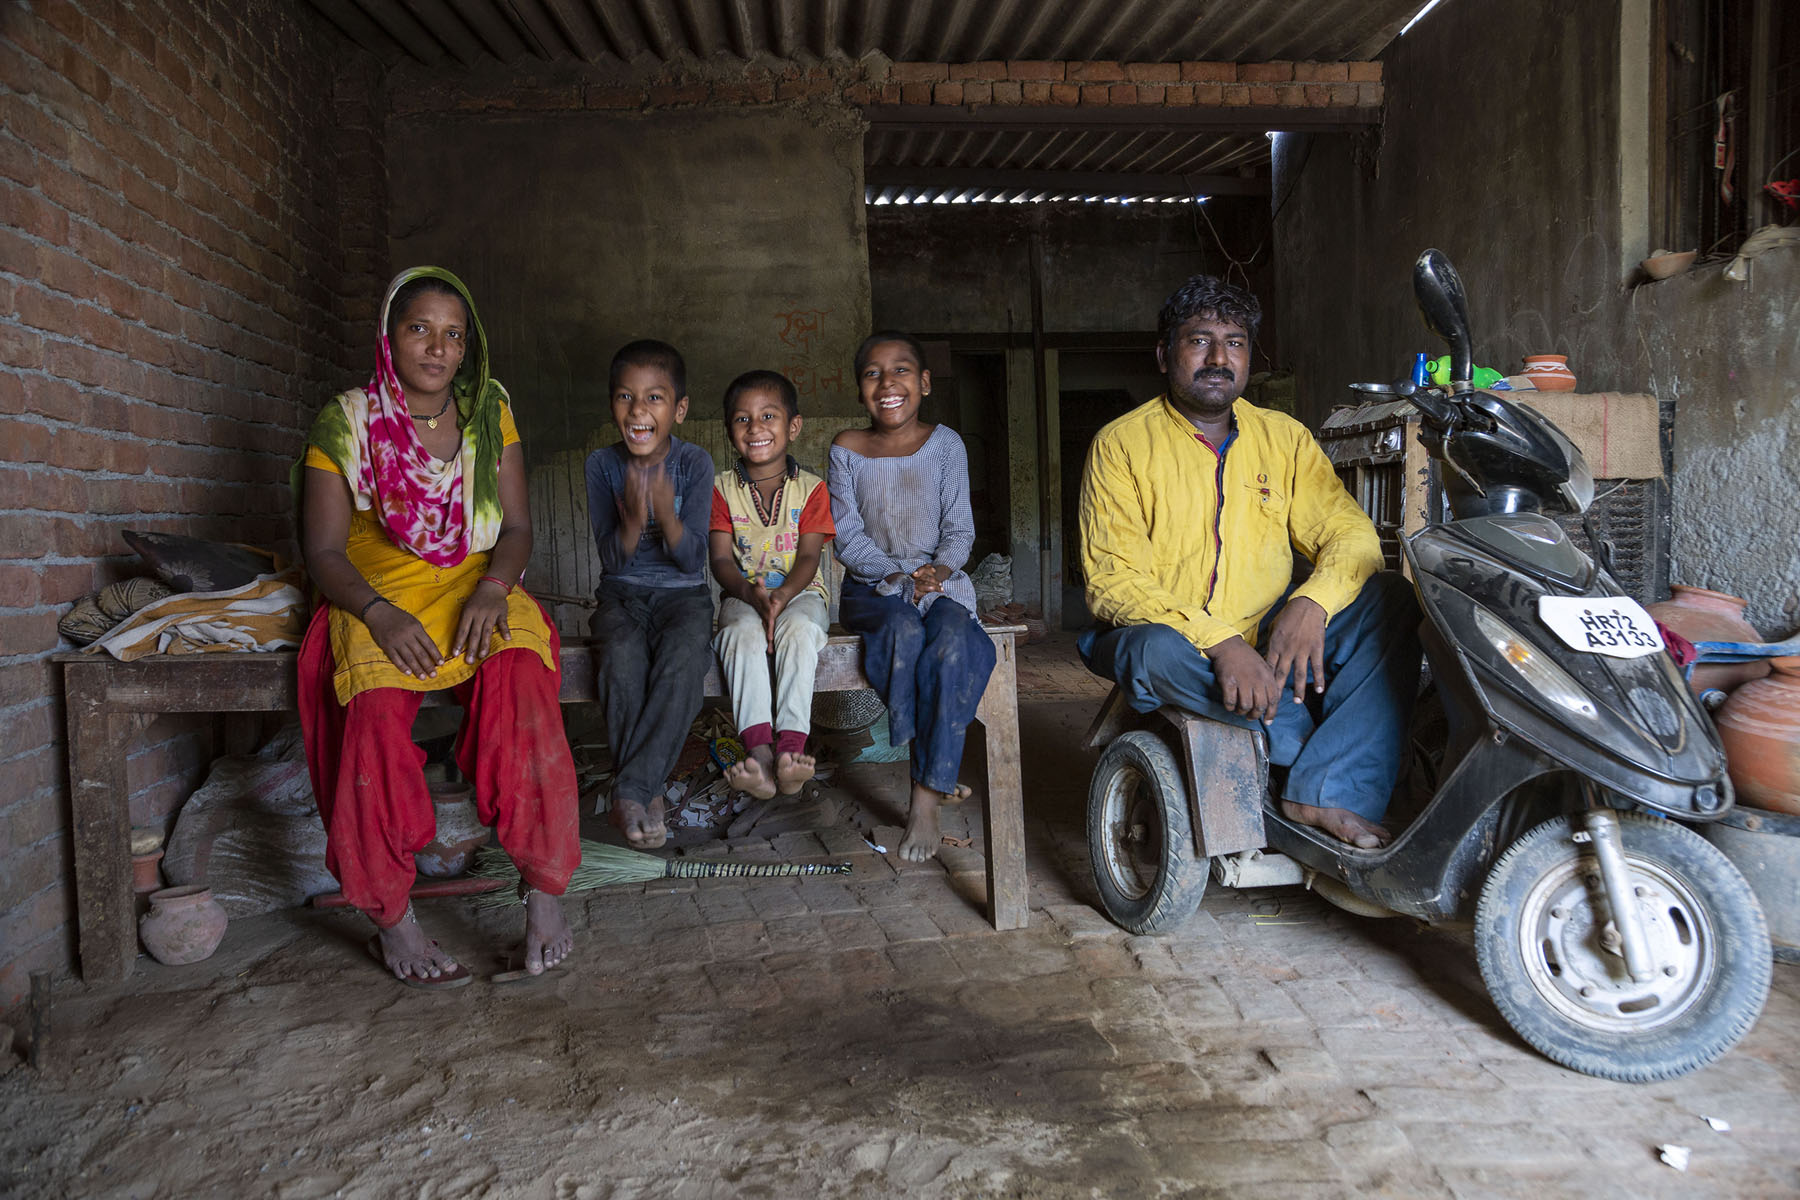 Ramotar sits in a black three-wheeled scooter modified for the disabled. He wears a yellow long-sleeved shirt and blackish-blue pants. To the left, his family sits in a row on a bare wooden cot. From left to right: his wife Sonya (27), and their children Manish, Prerna and Ekta. Sonya wears a red salwar, yellow kameez and dupatta with a red, green and white print. She has draped the dupatta over her head and shoulders. Manish wears dark brown pants and a tight, full-sleeved T-shirt. Prerna wears light-coloured pants and short-sleeved T-shirt. Ekta wears a full-sleeved long, light violet top and dark blue pants. All three children are laughing.